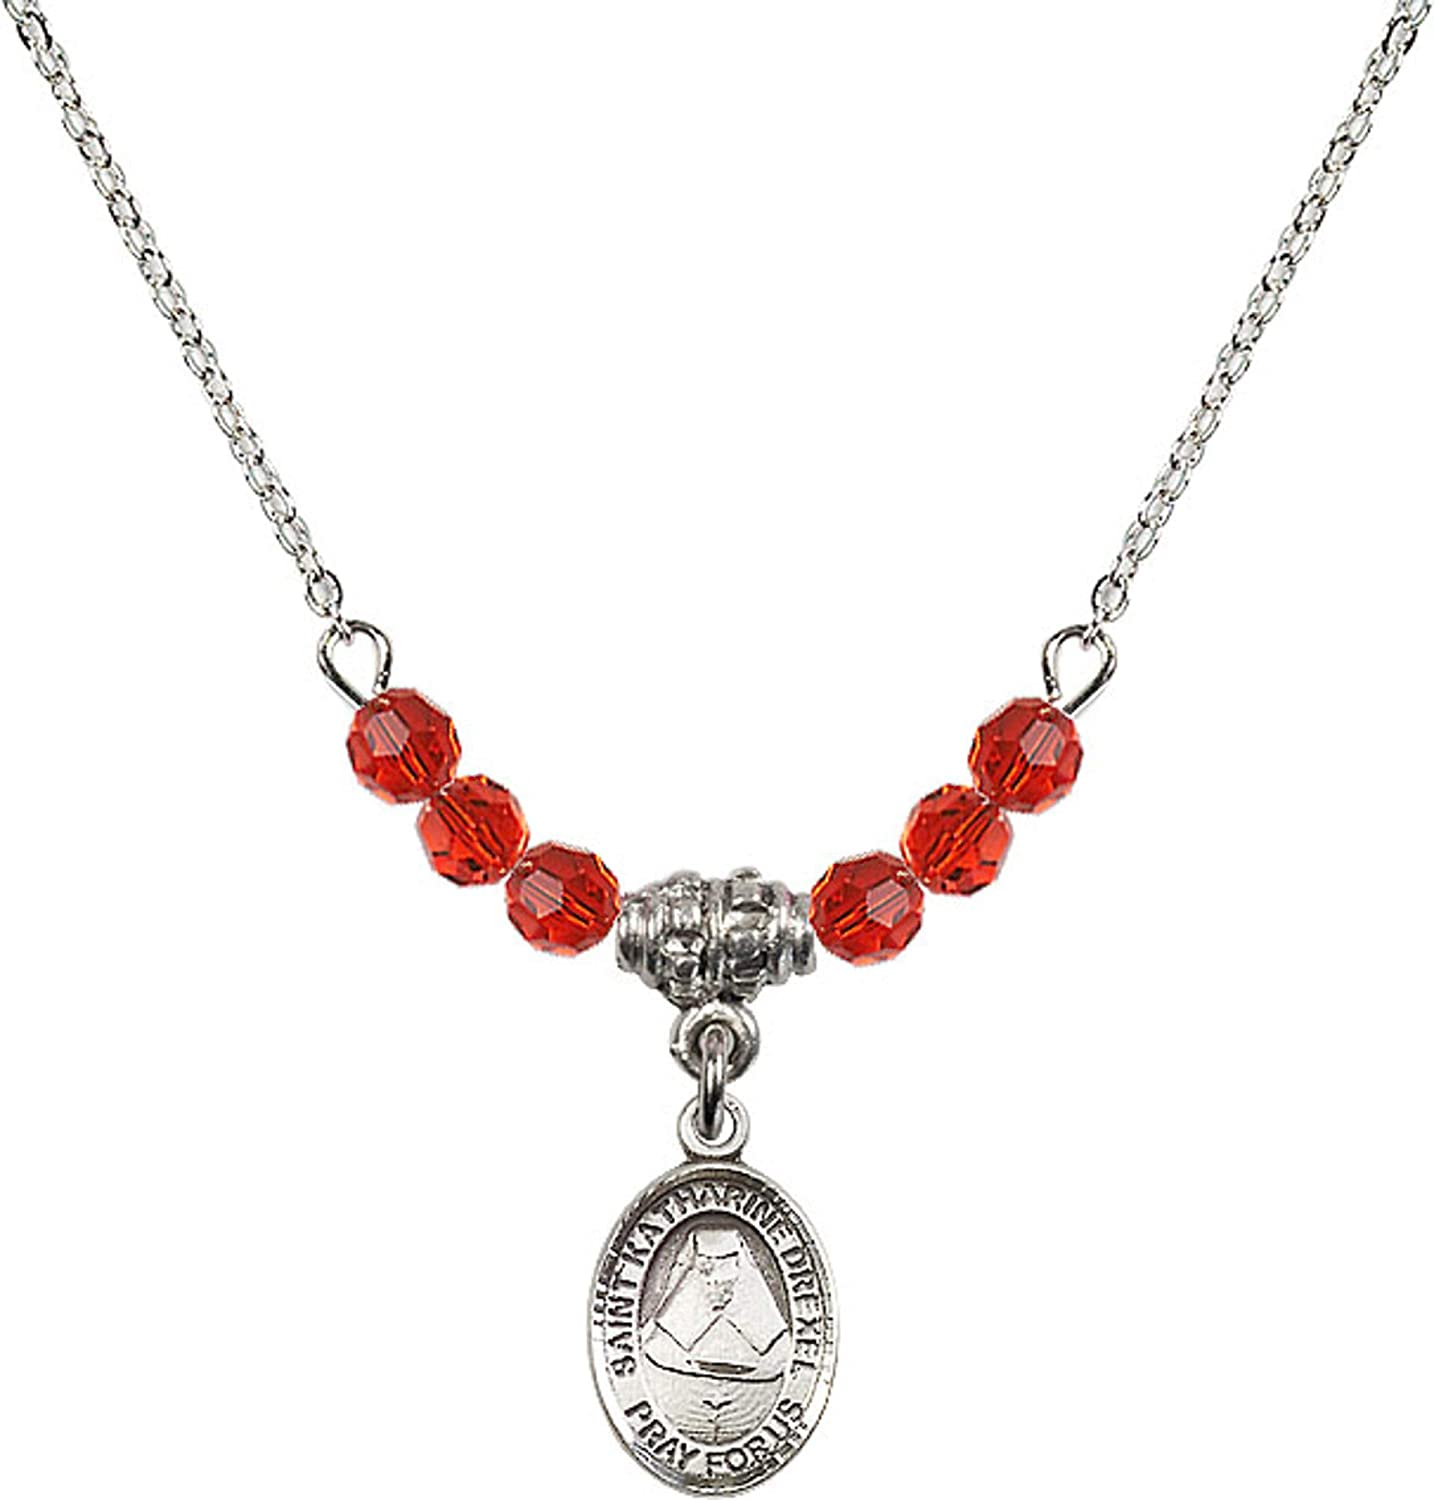 Bonyak Jewelry 18 Inch Rhodium Plated Necklace w// 4mm Red July Birth Month Stone Beads and Saint Katharine Drexel Charm